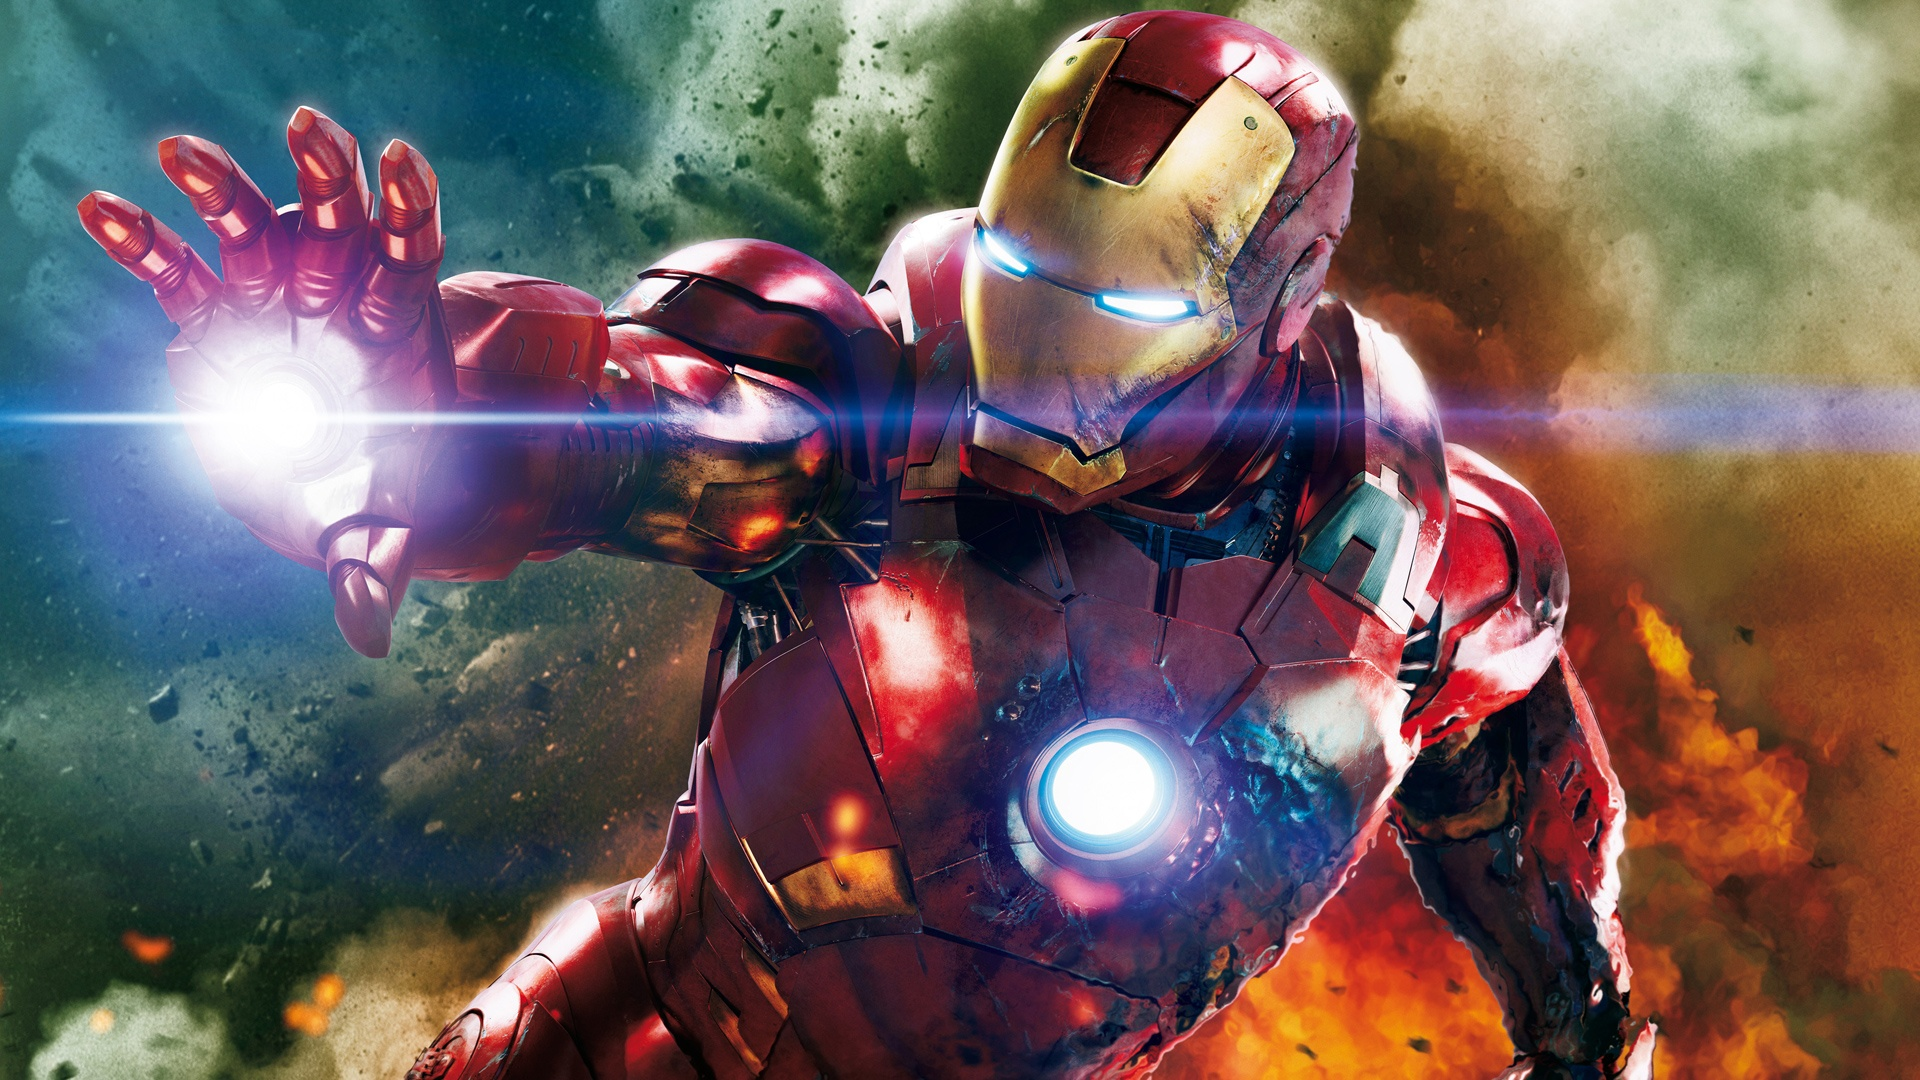 Iron Man 3 Wallpaper 1080pHD Wallpapers 1920x1080